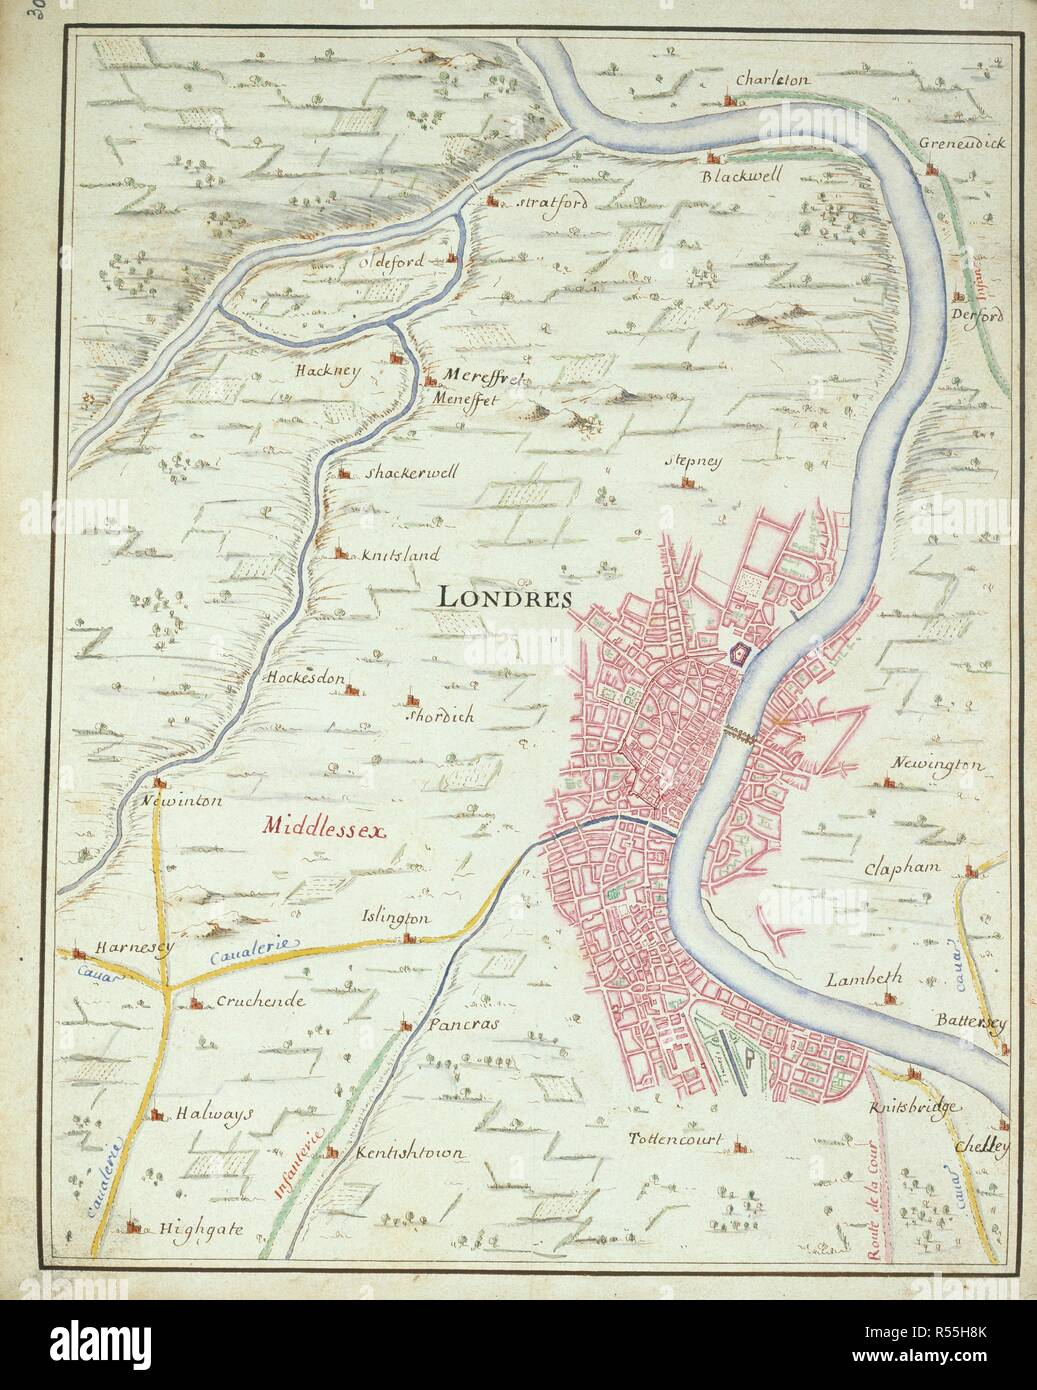 Knightsbridge London Map.Map Of London Invasion Of England By The Prince Of Orange 1688